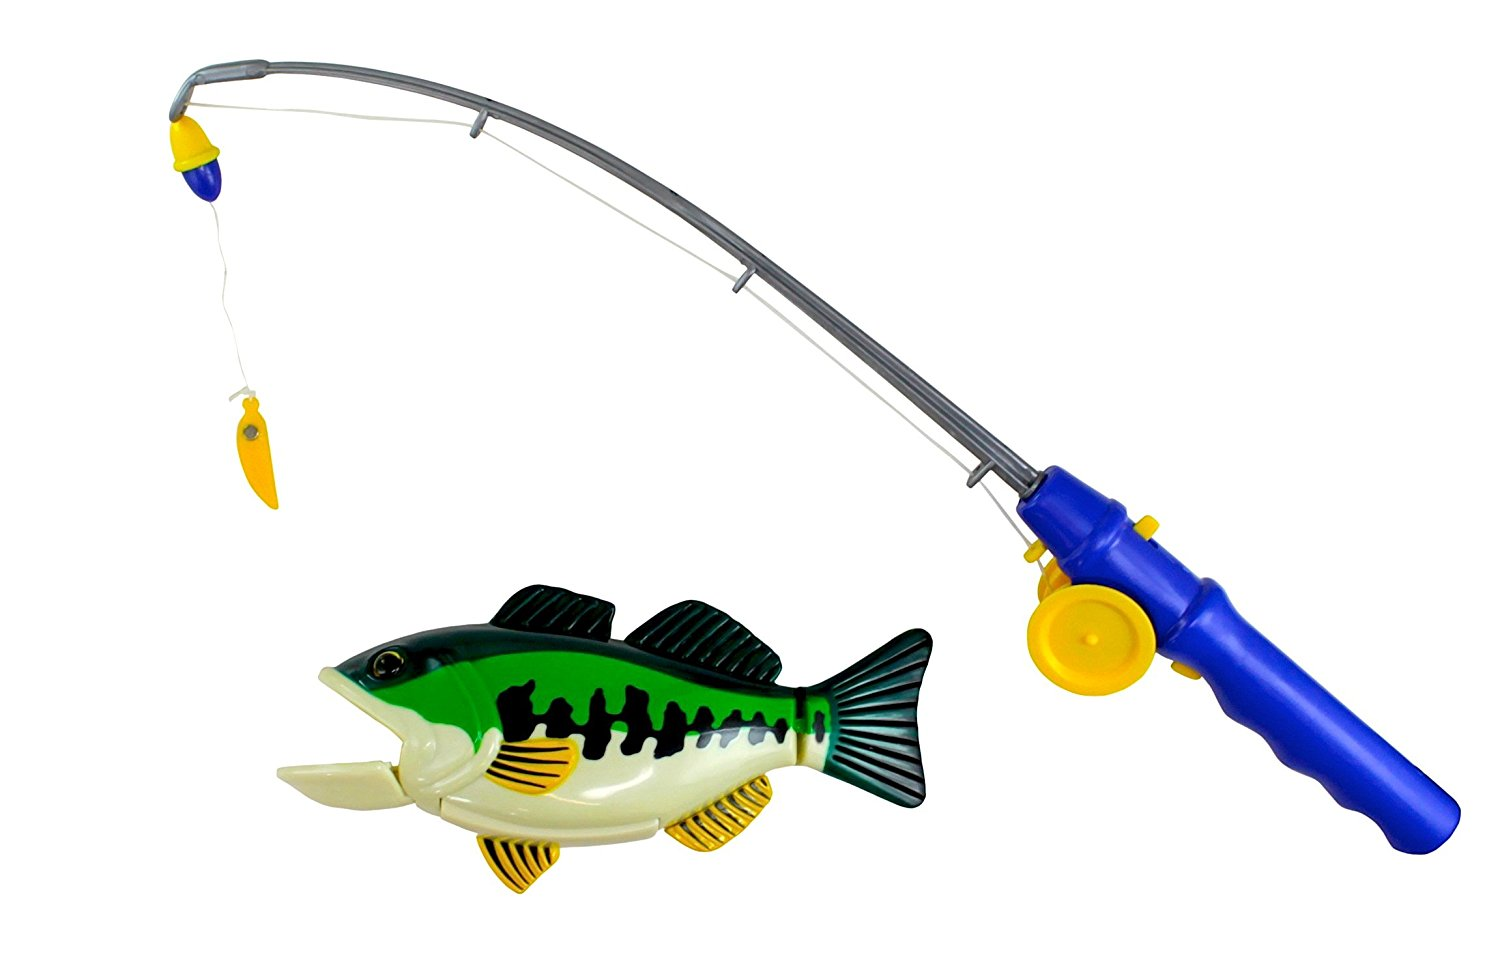 Buy Bass Fishing Bathtub Toy - Swimming Fish in Cheap Price on ...